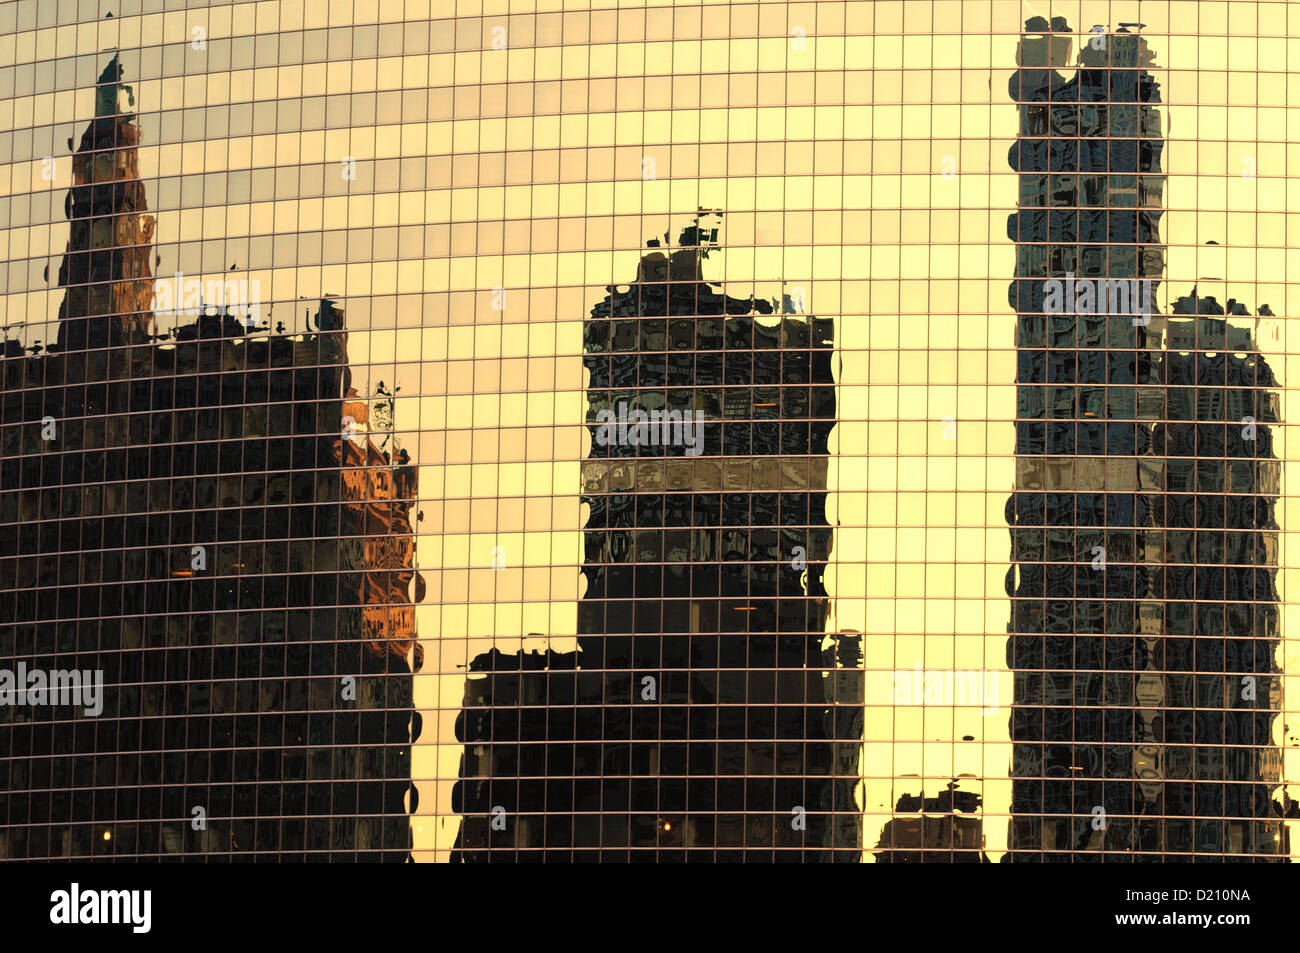 Chicago, Illinois, USA. The 333 West Wacker Drive Building's glass surface creating a distorted reflection. - Stock Image